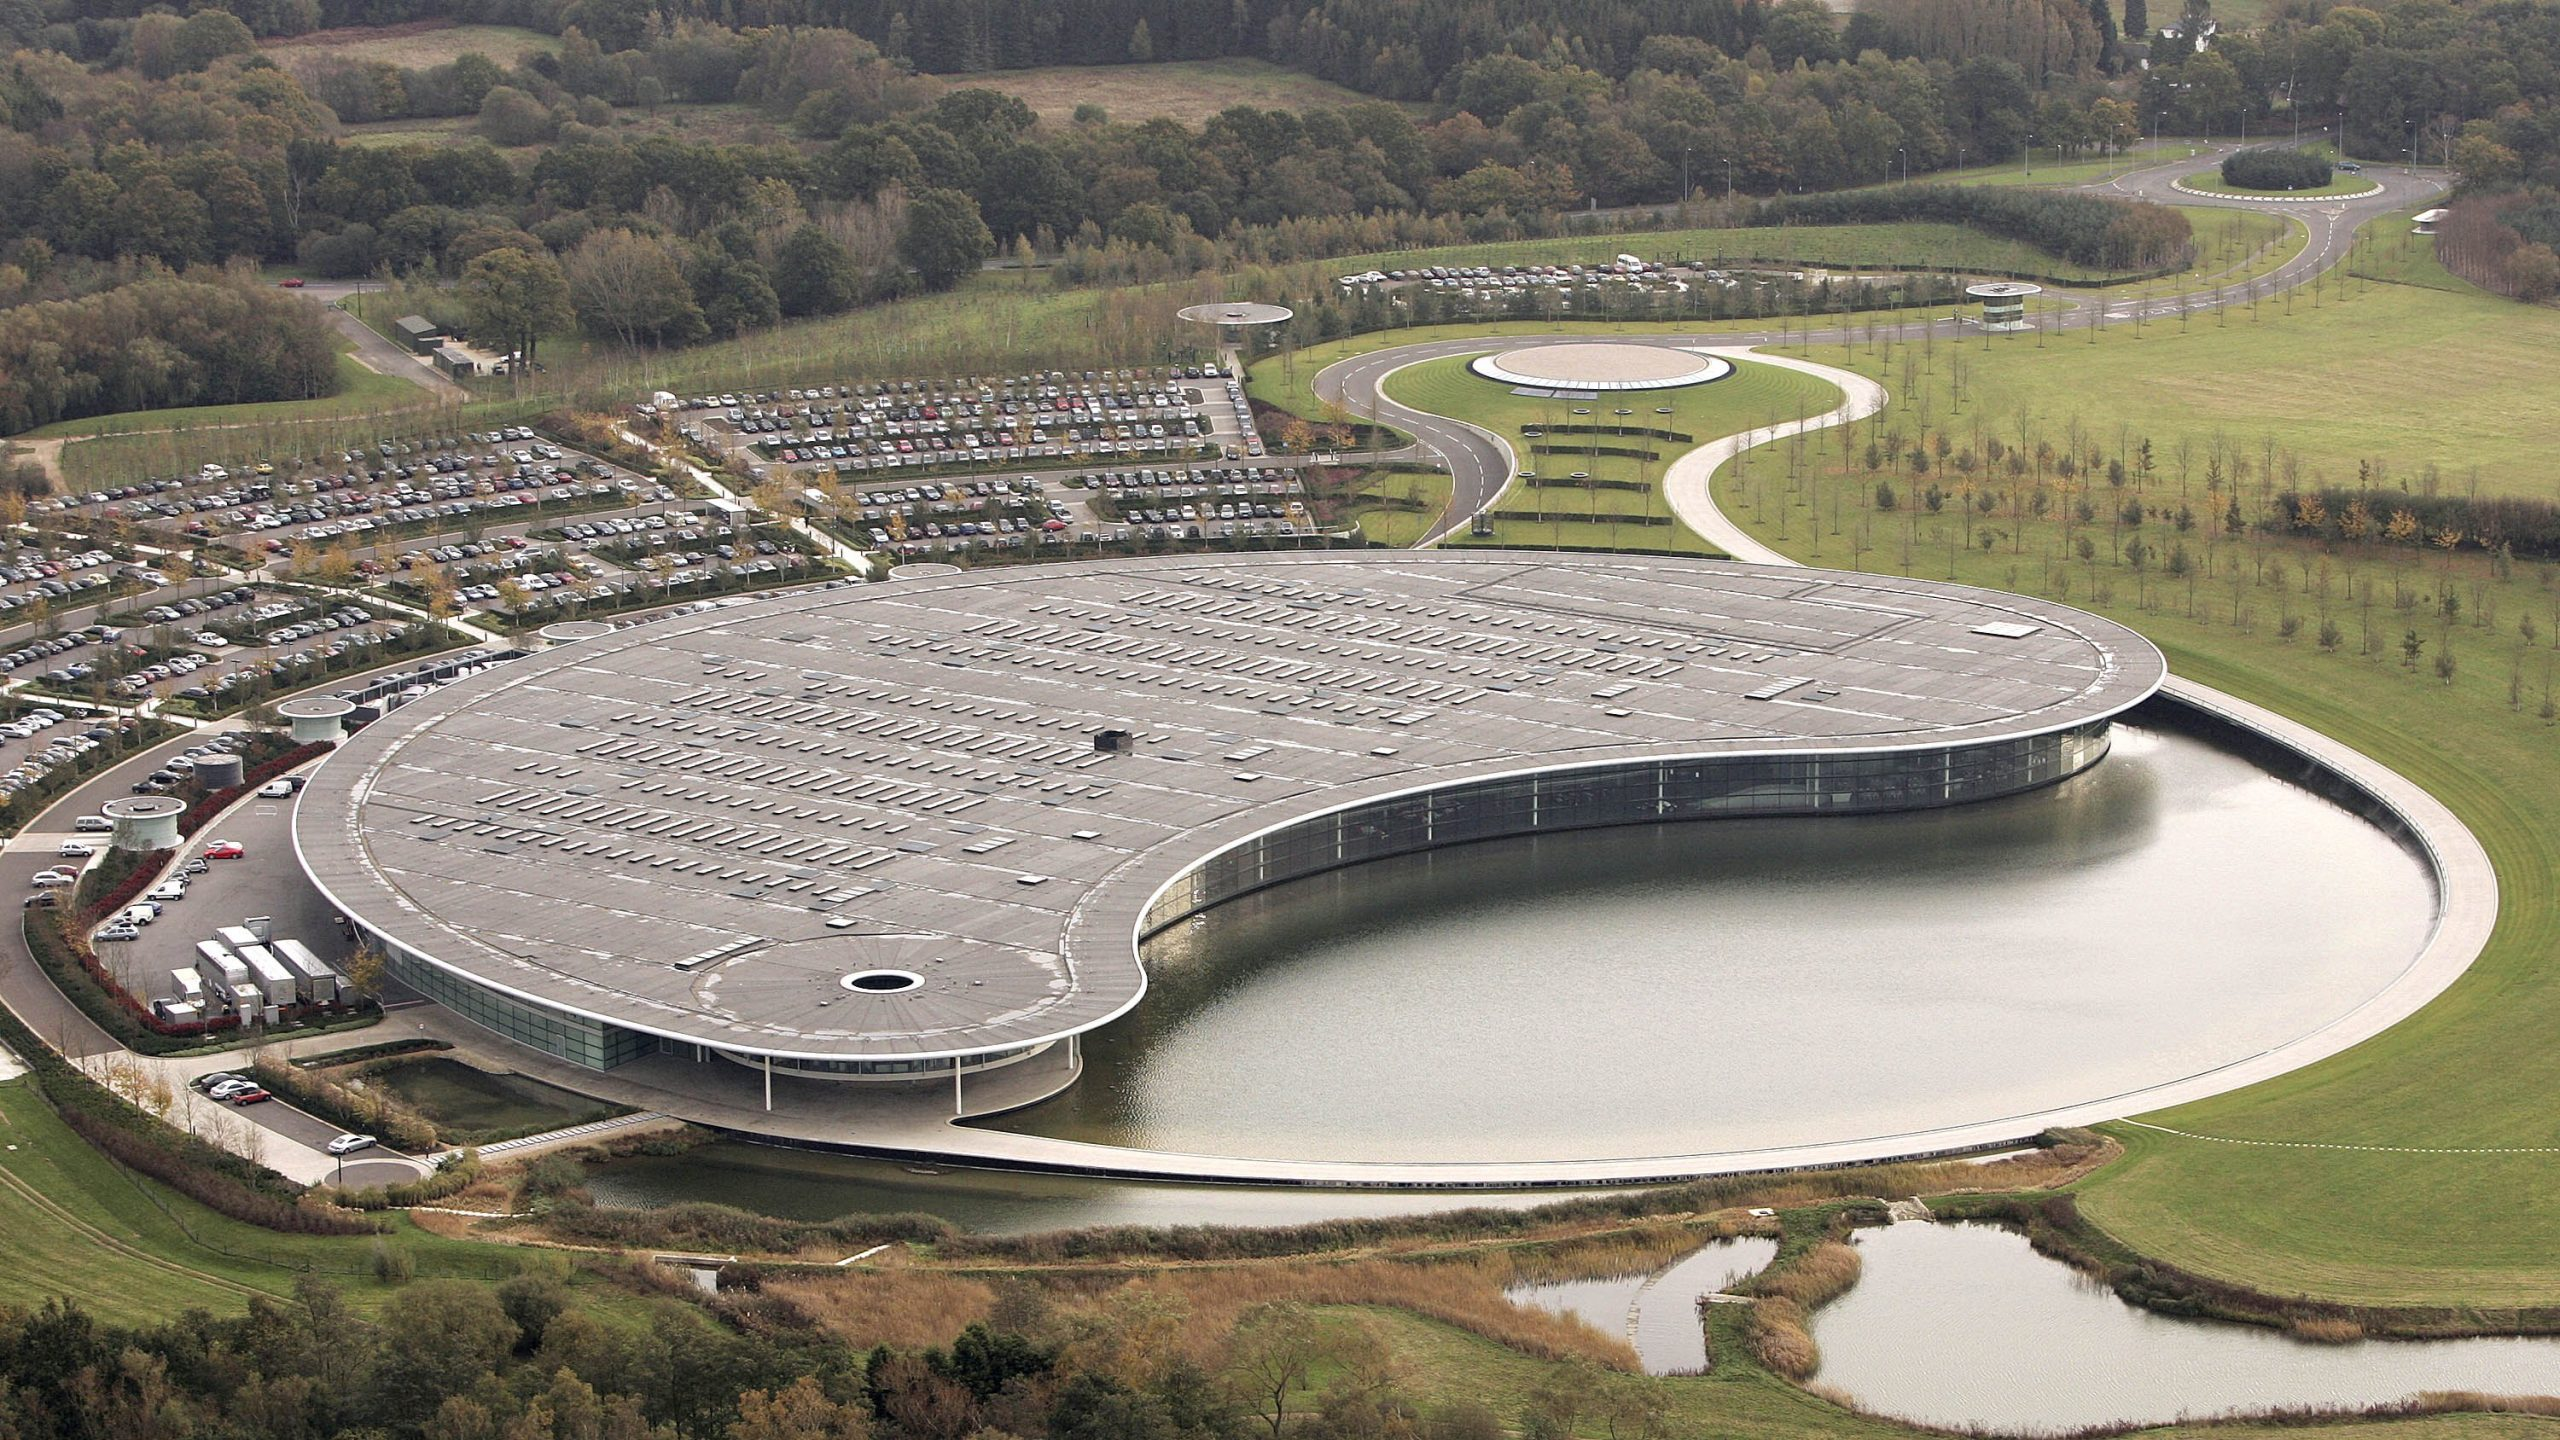 McLaren puts iconic Woking HQ up for sale for £200m